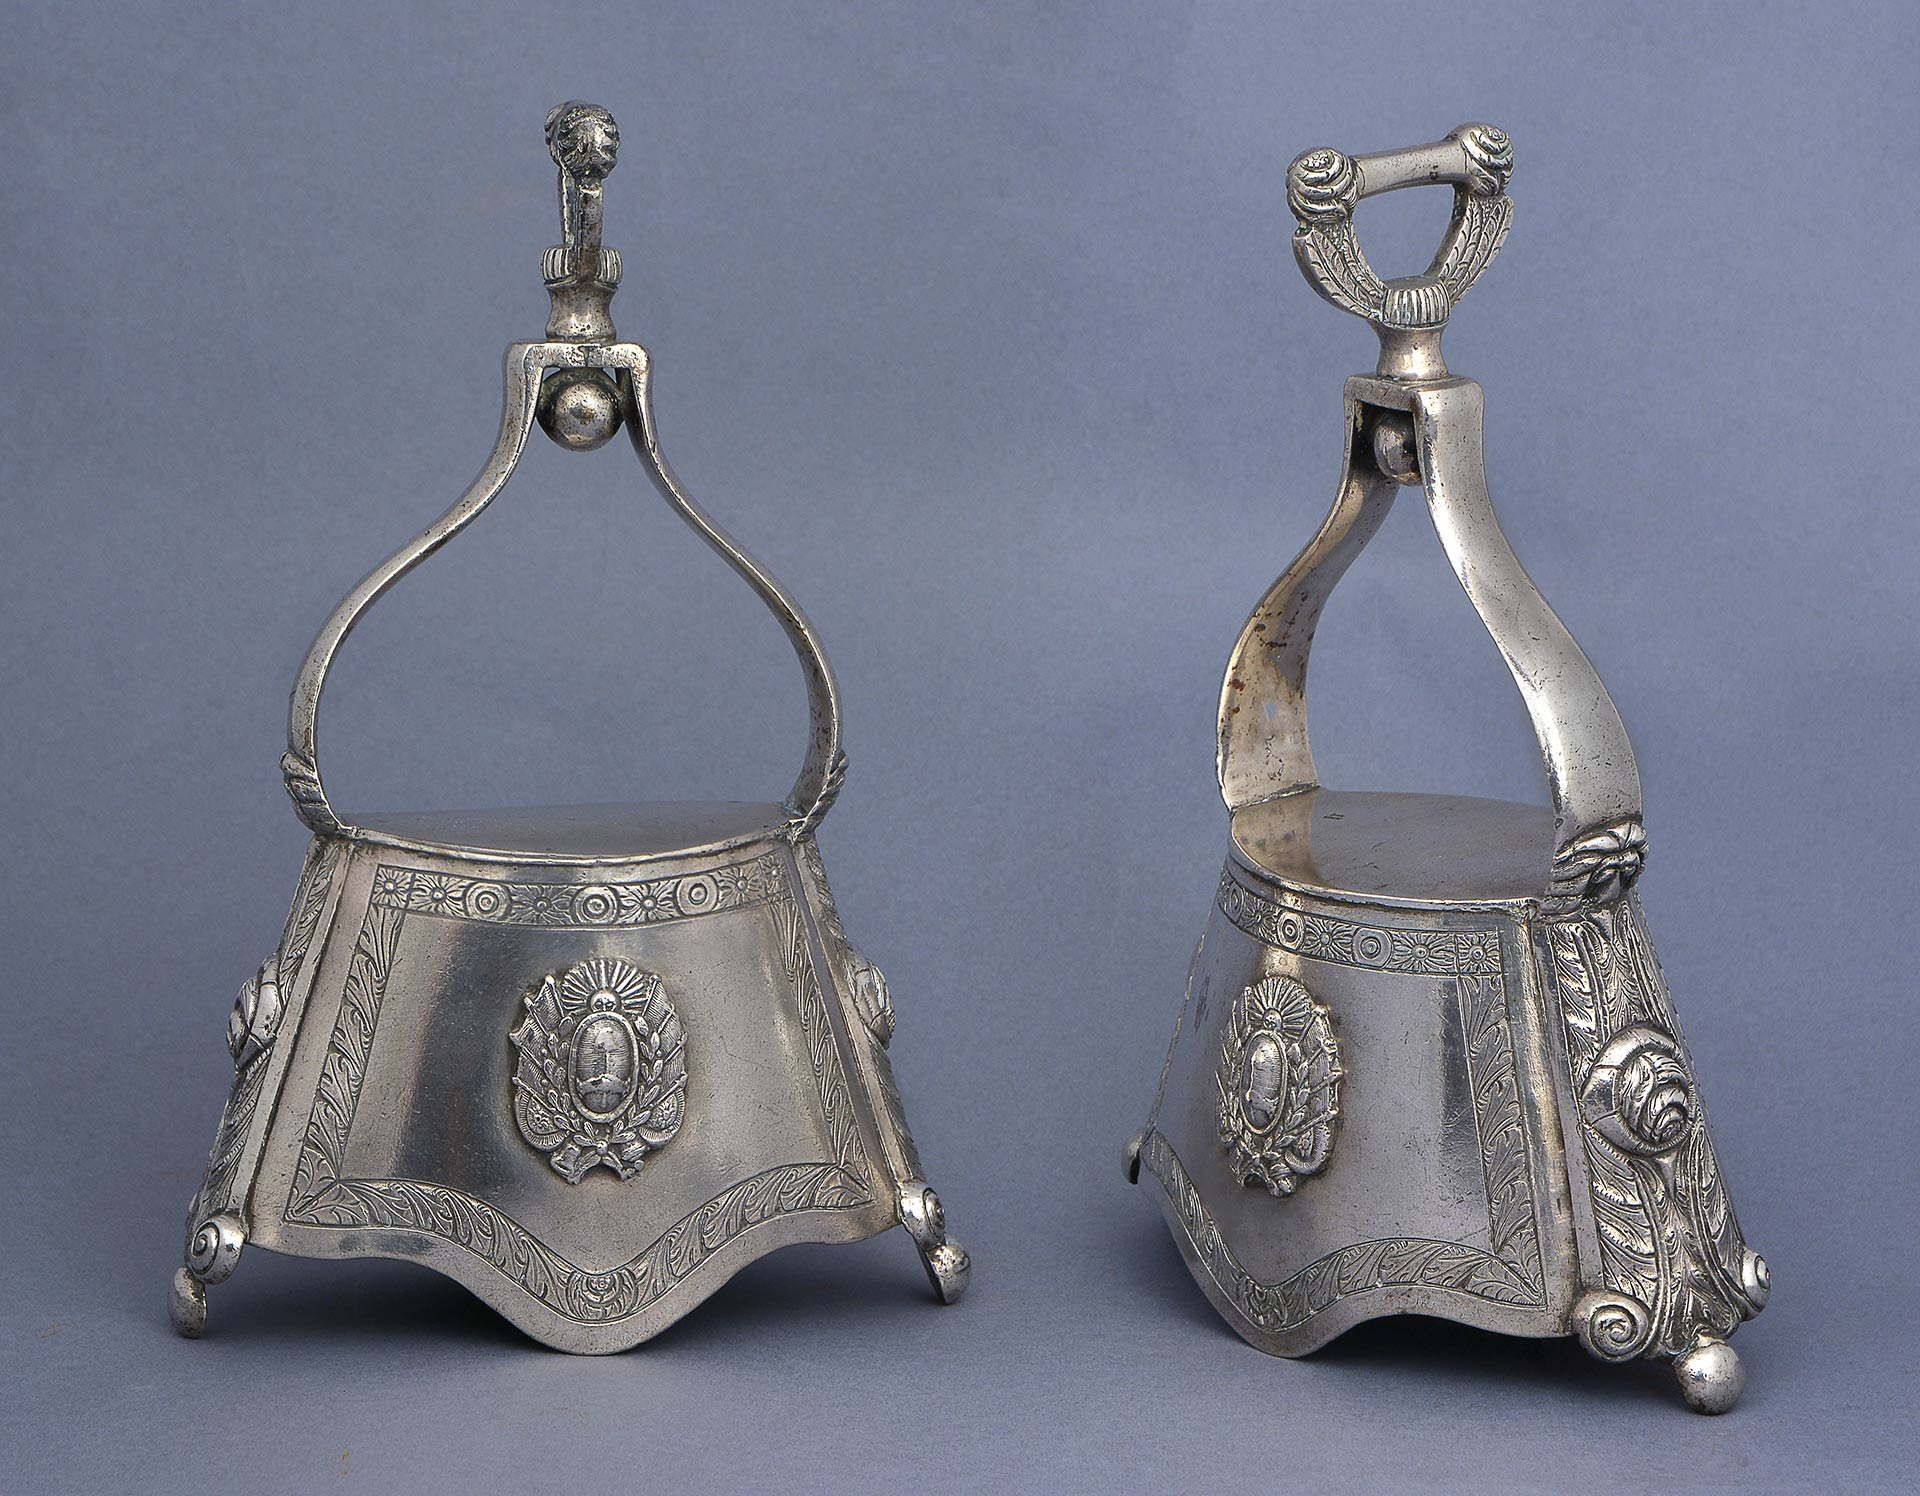 A PAIR OF SILVER BELL STIRRUPS